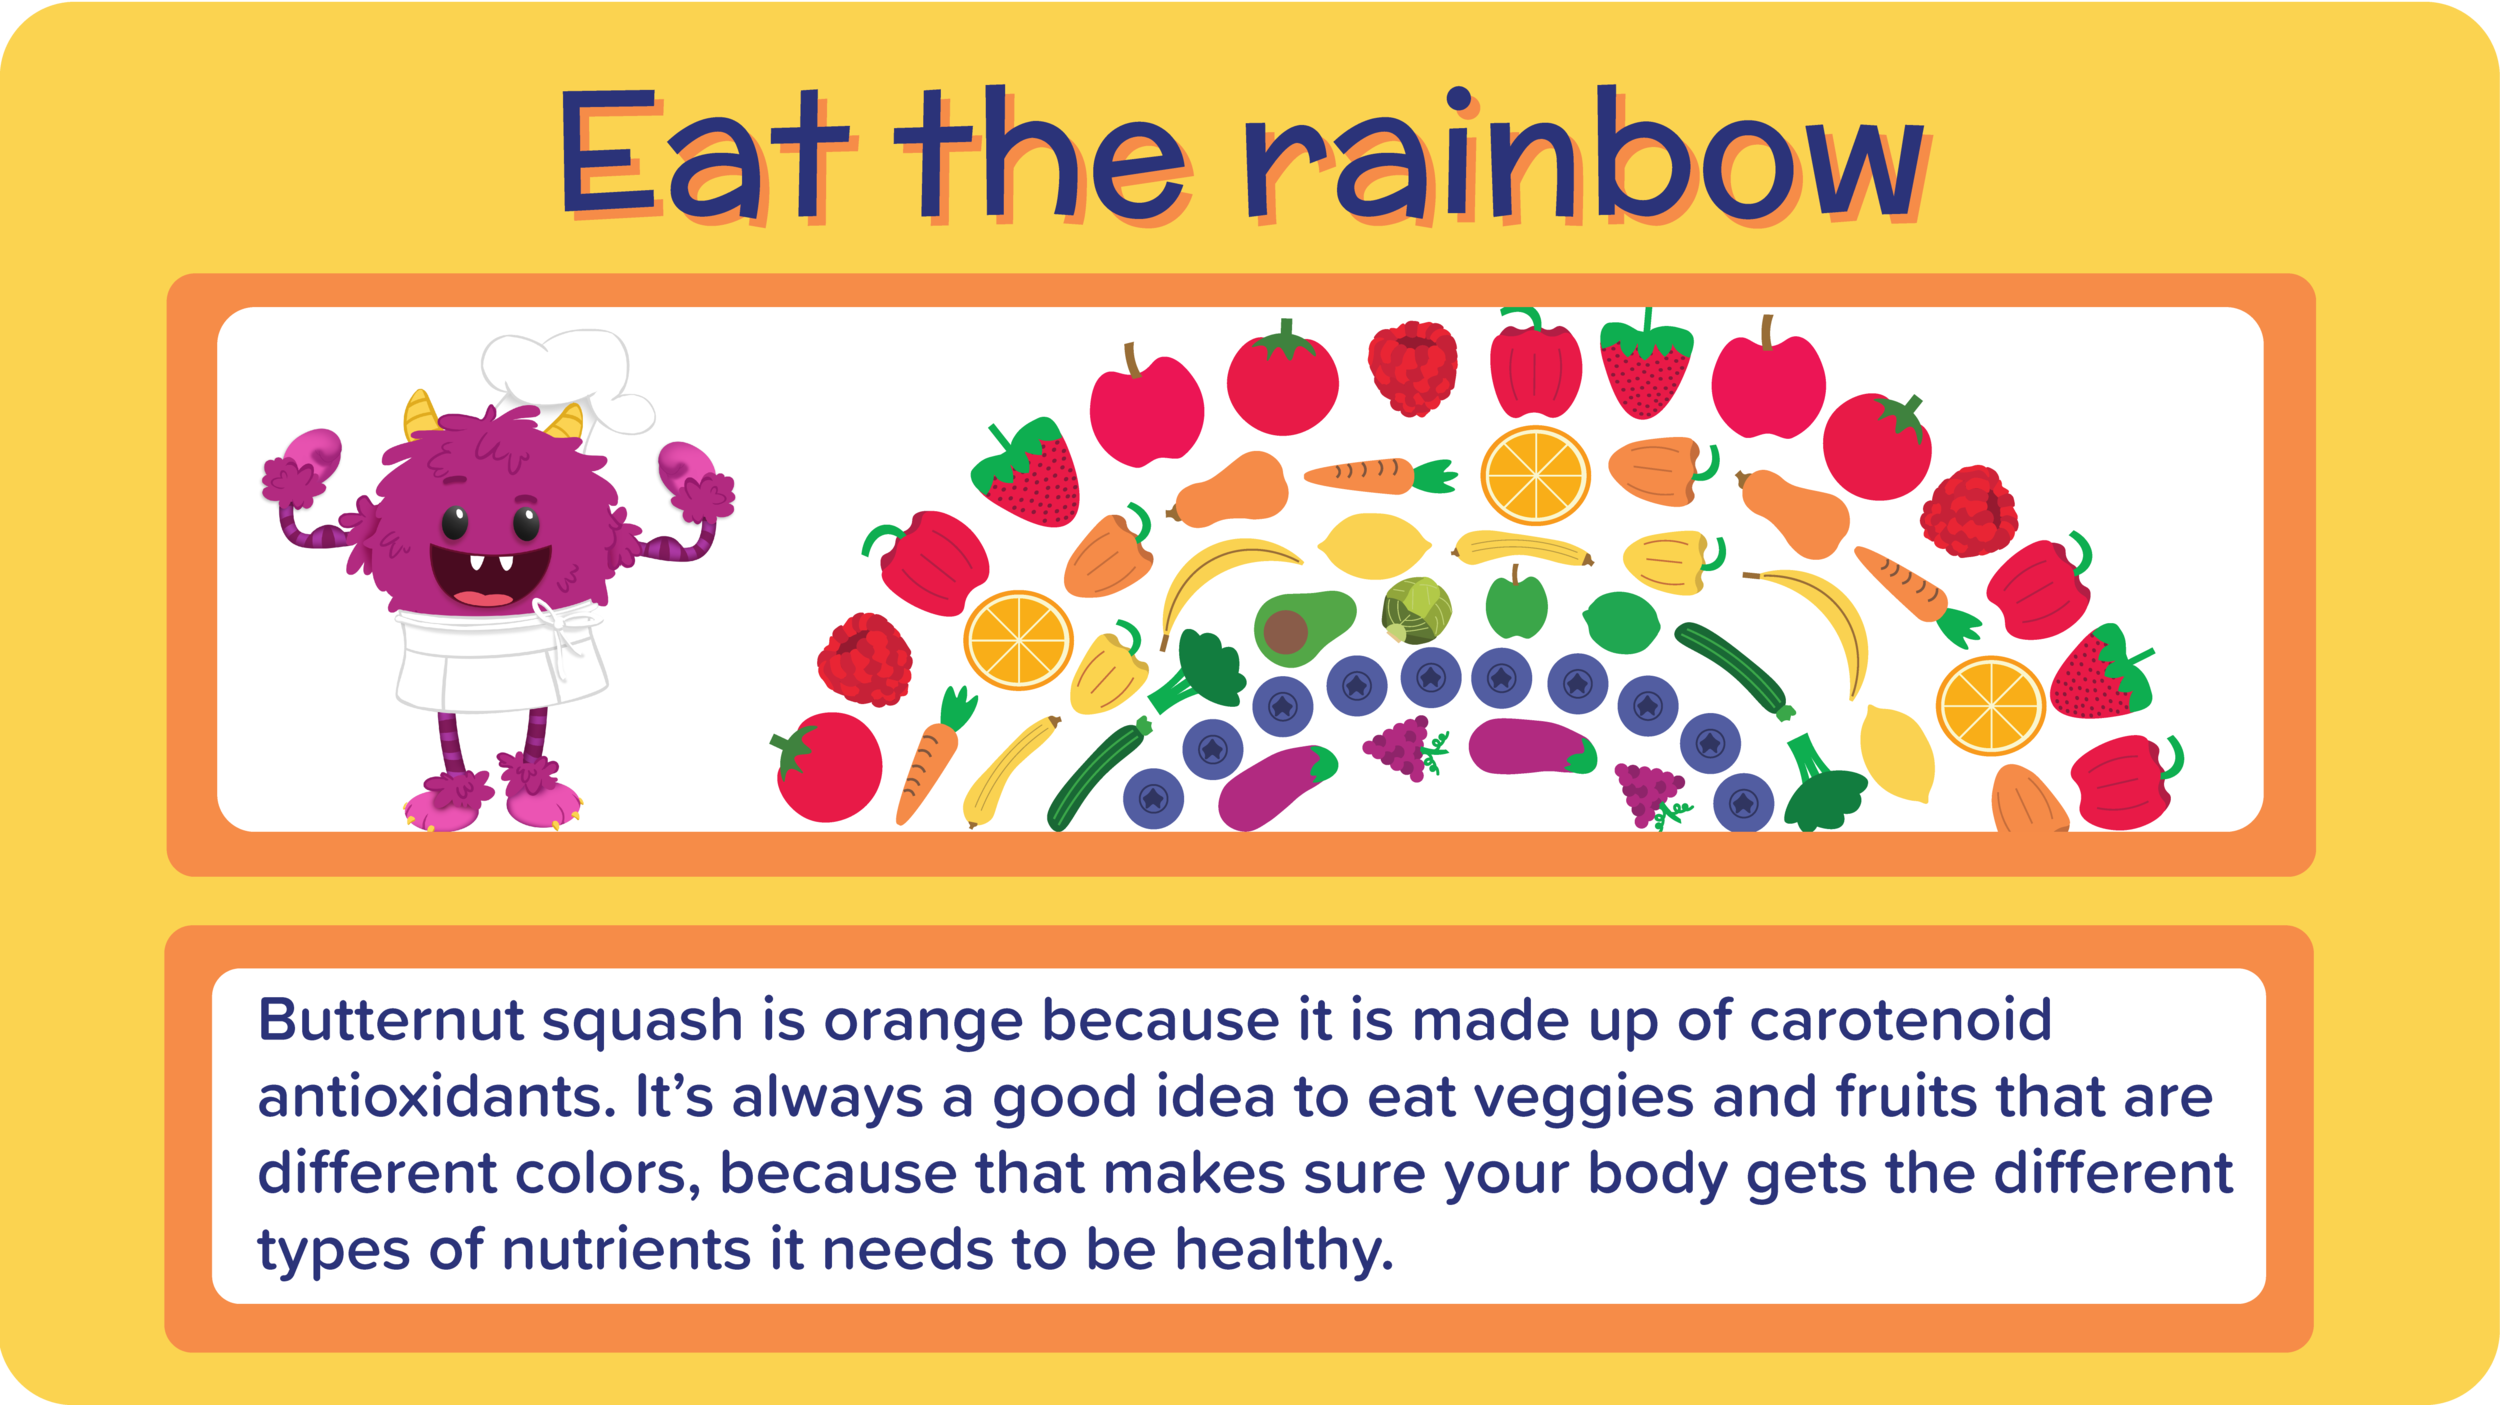 12_ChickenFingersButternutBrussels_eat the rainbow-01.png